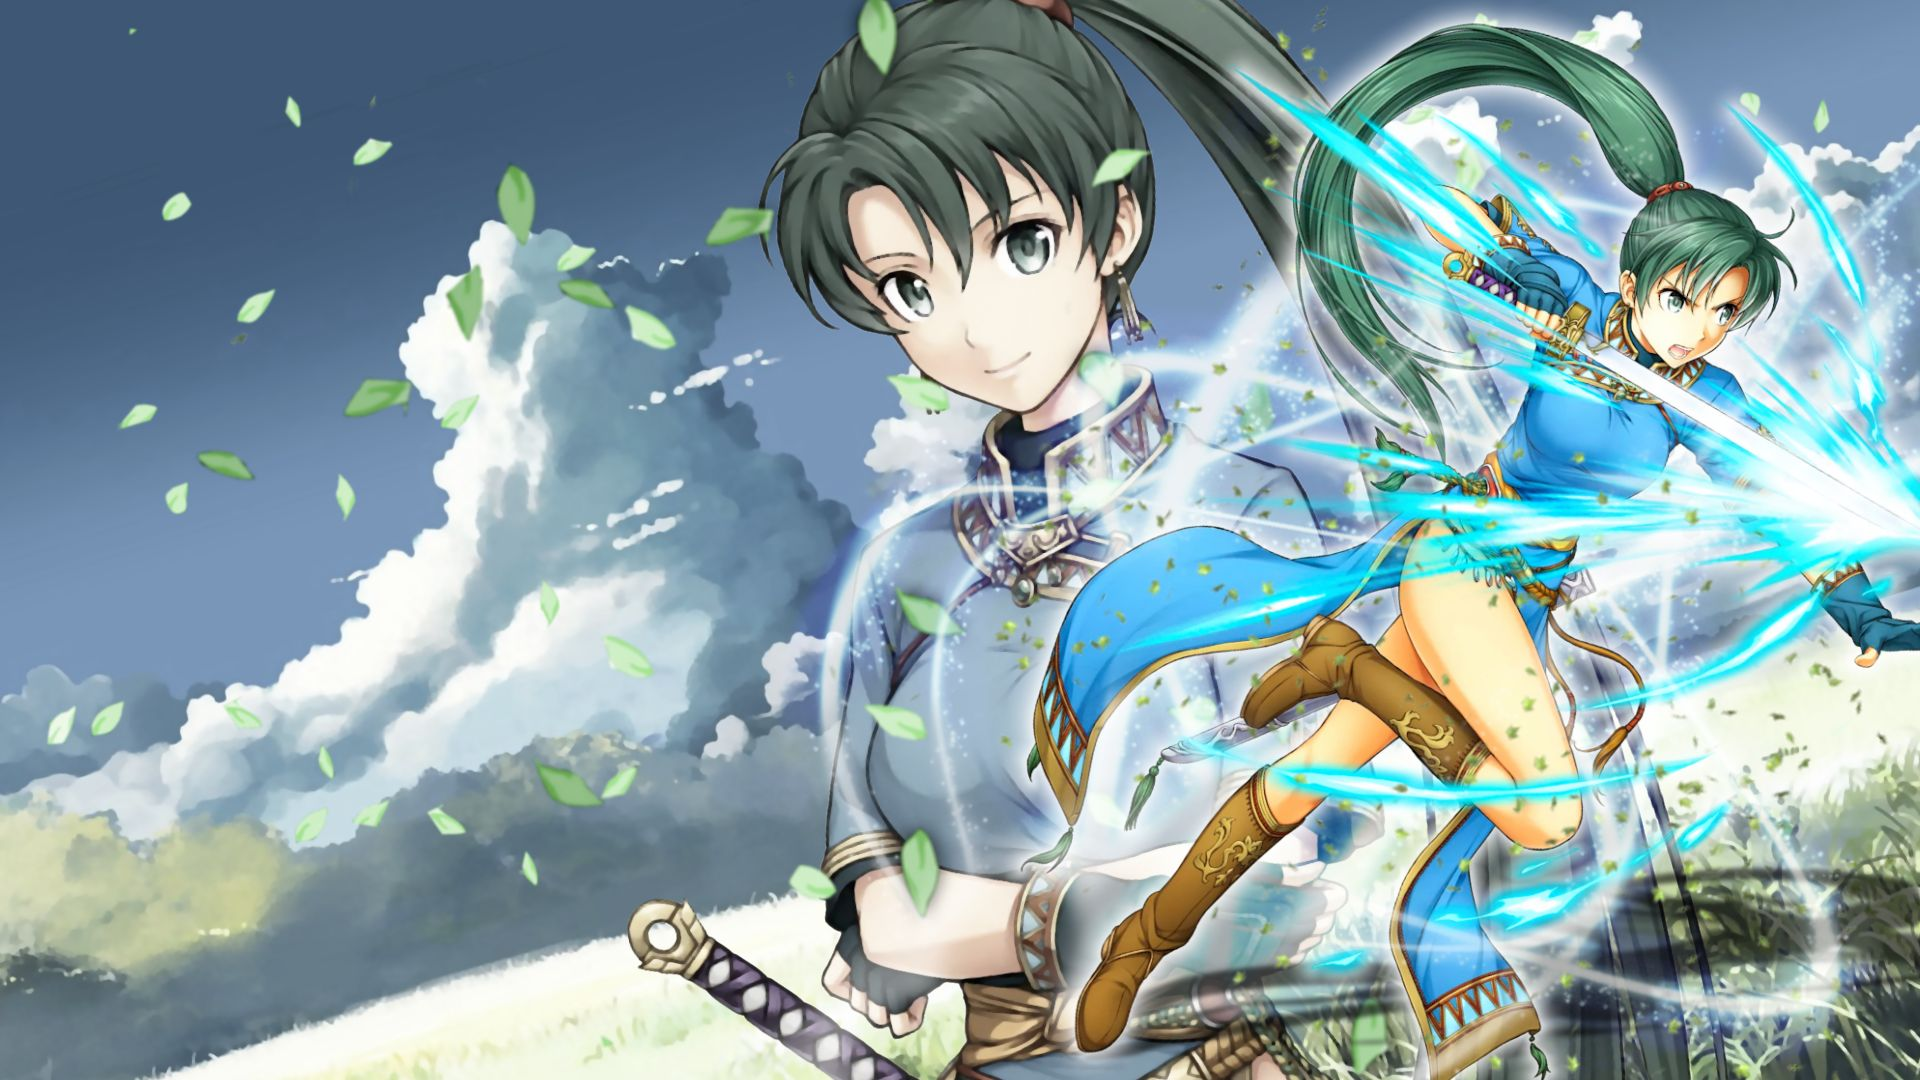 Fire Emblem Heroes Wallpaper Lyn By Incognitoza On Deviantart